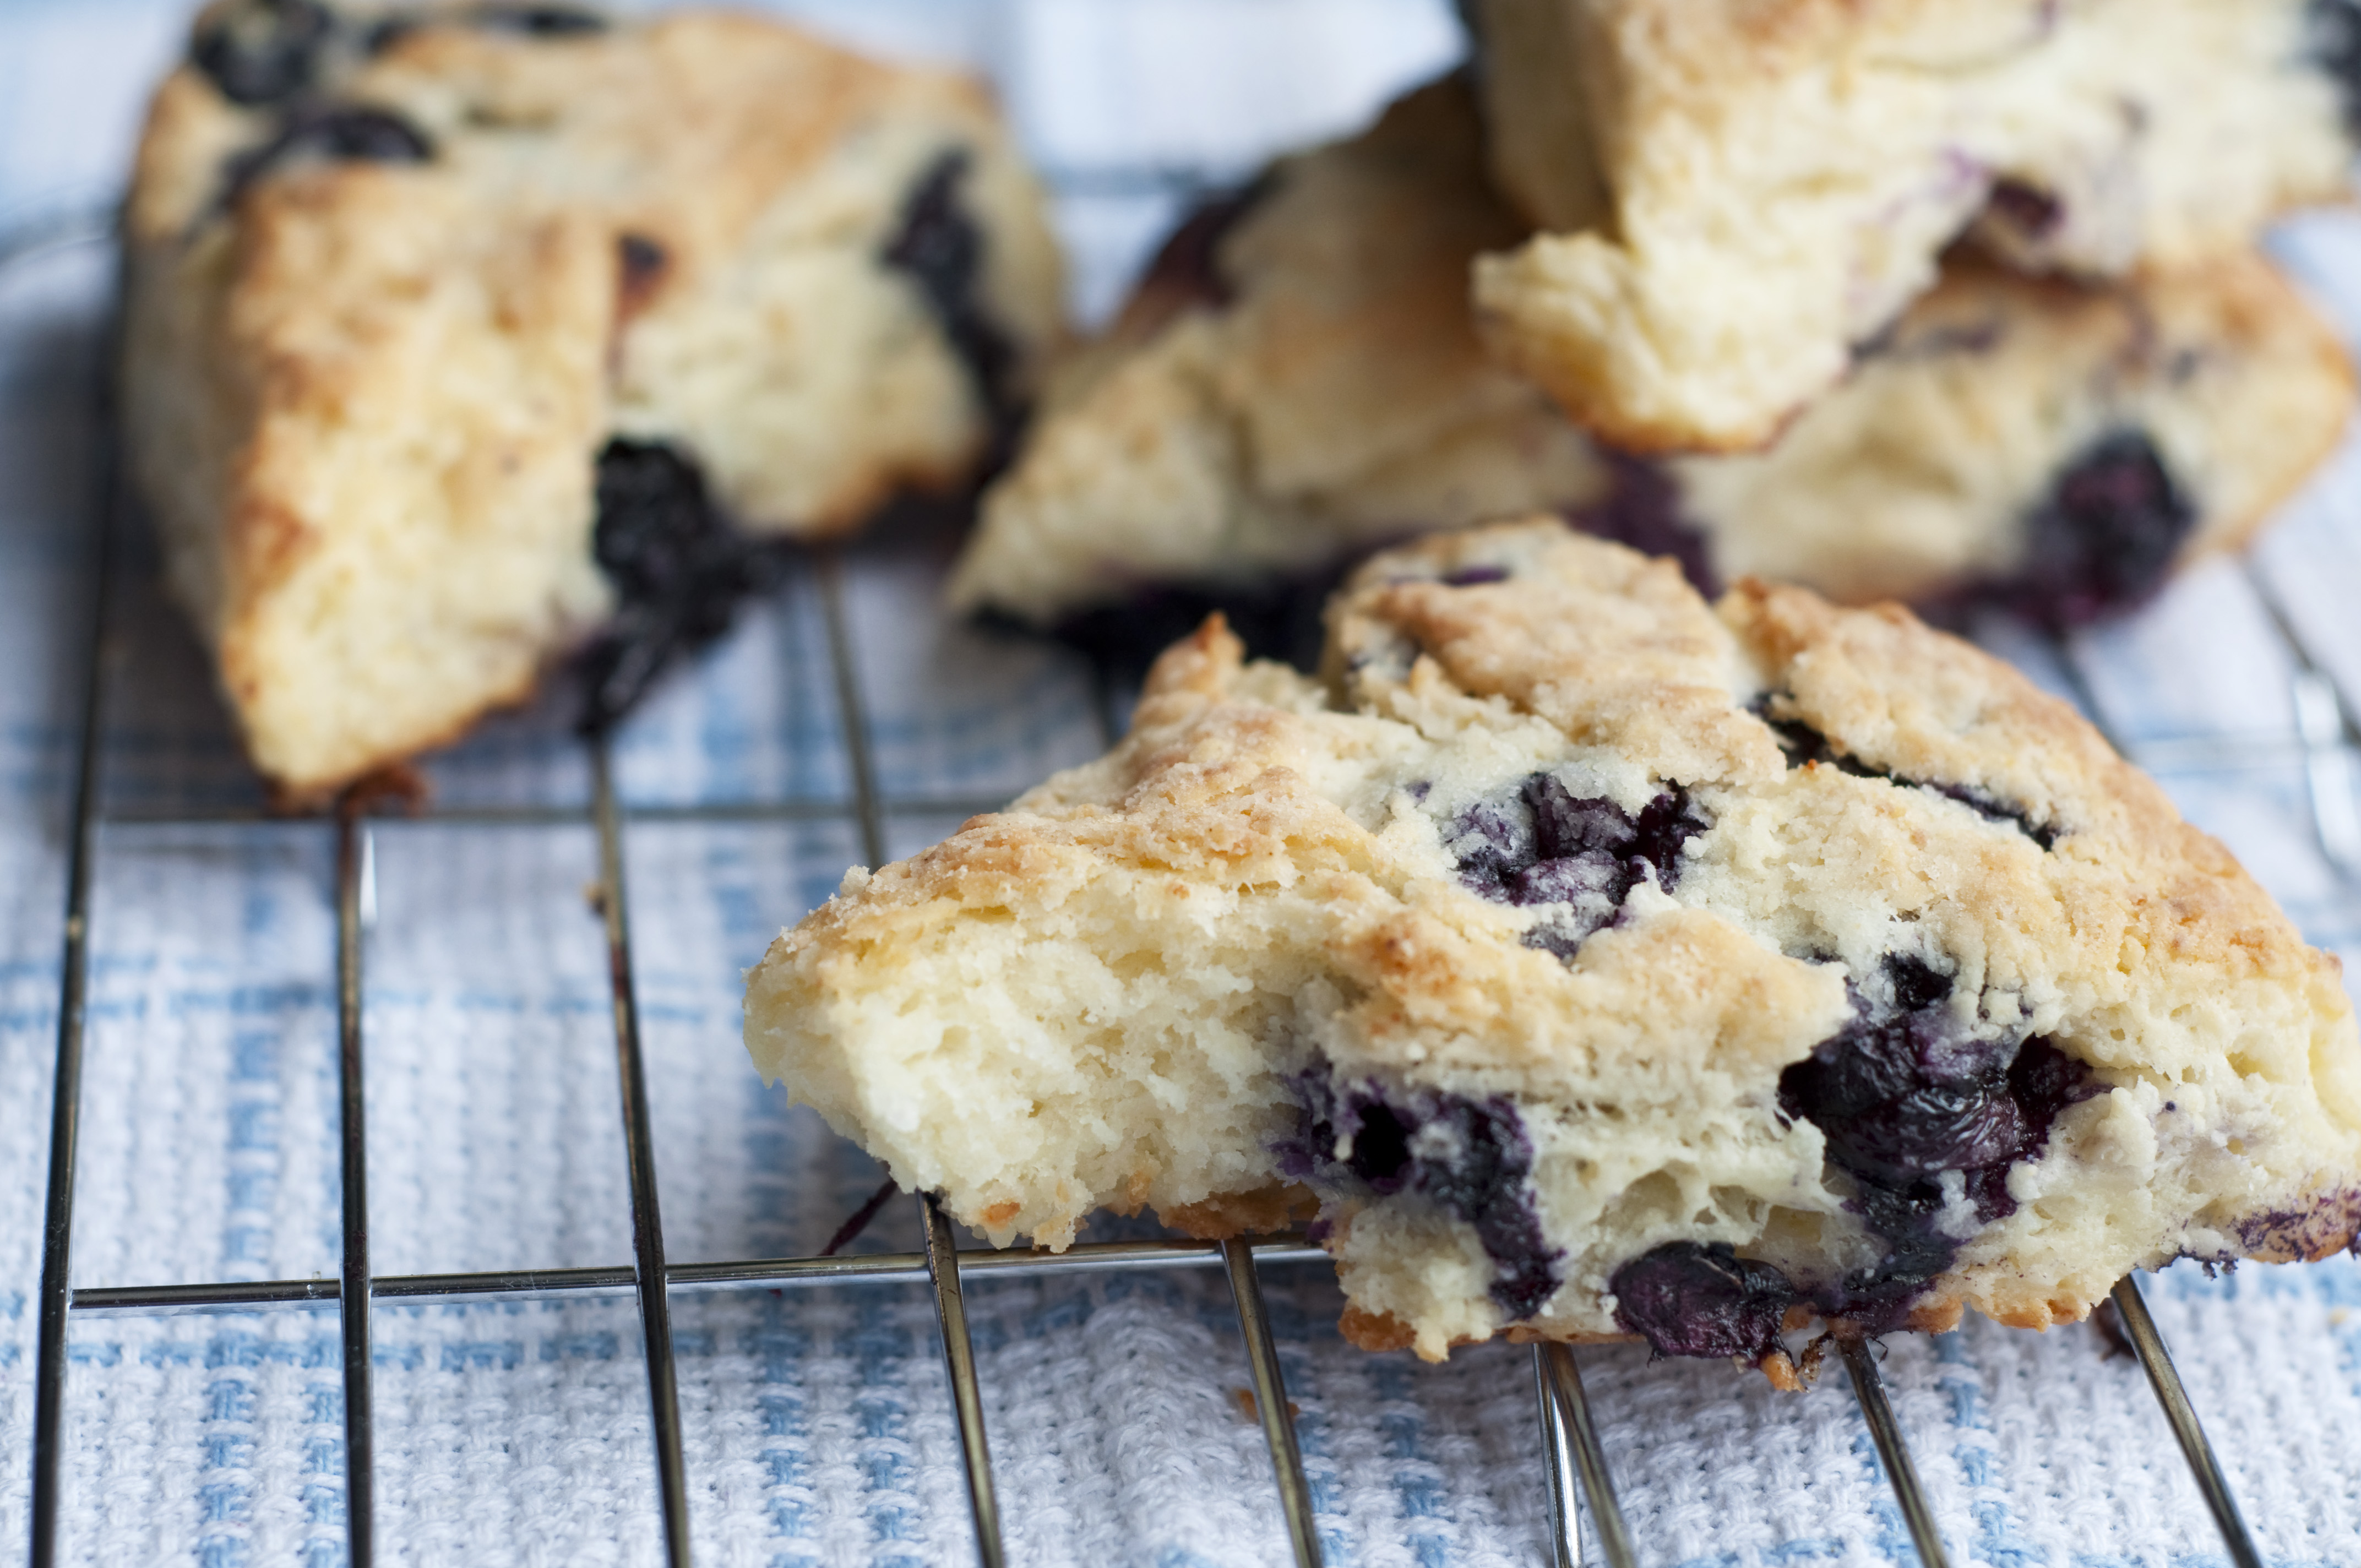 Lemon-Blueberry Ricotta Scones